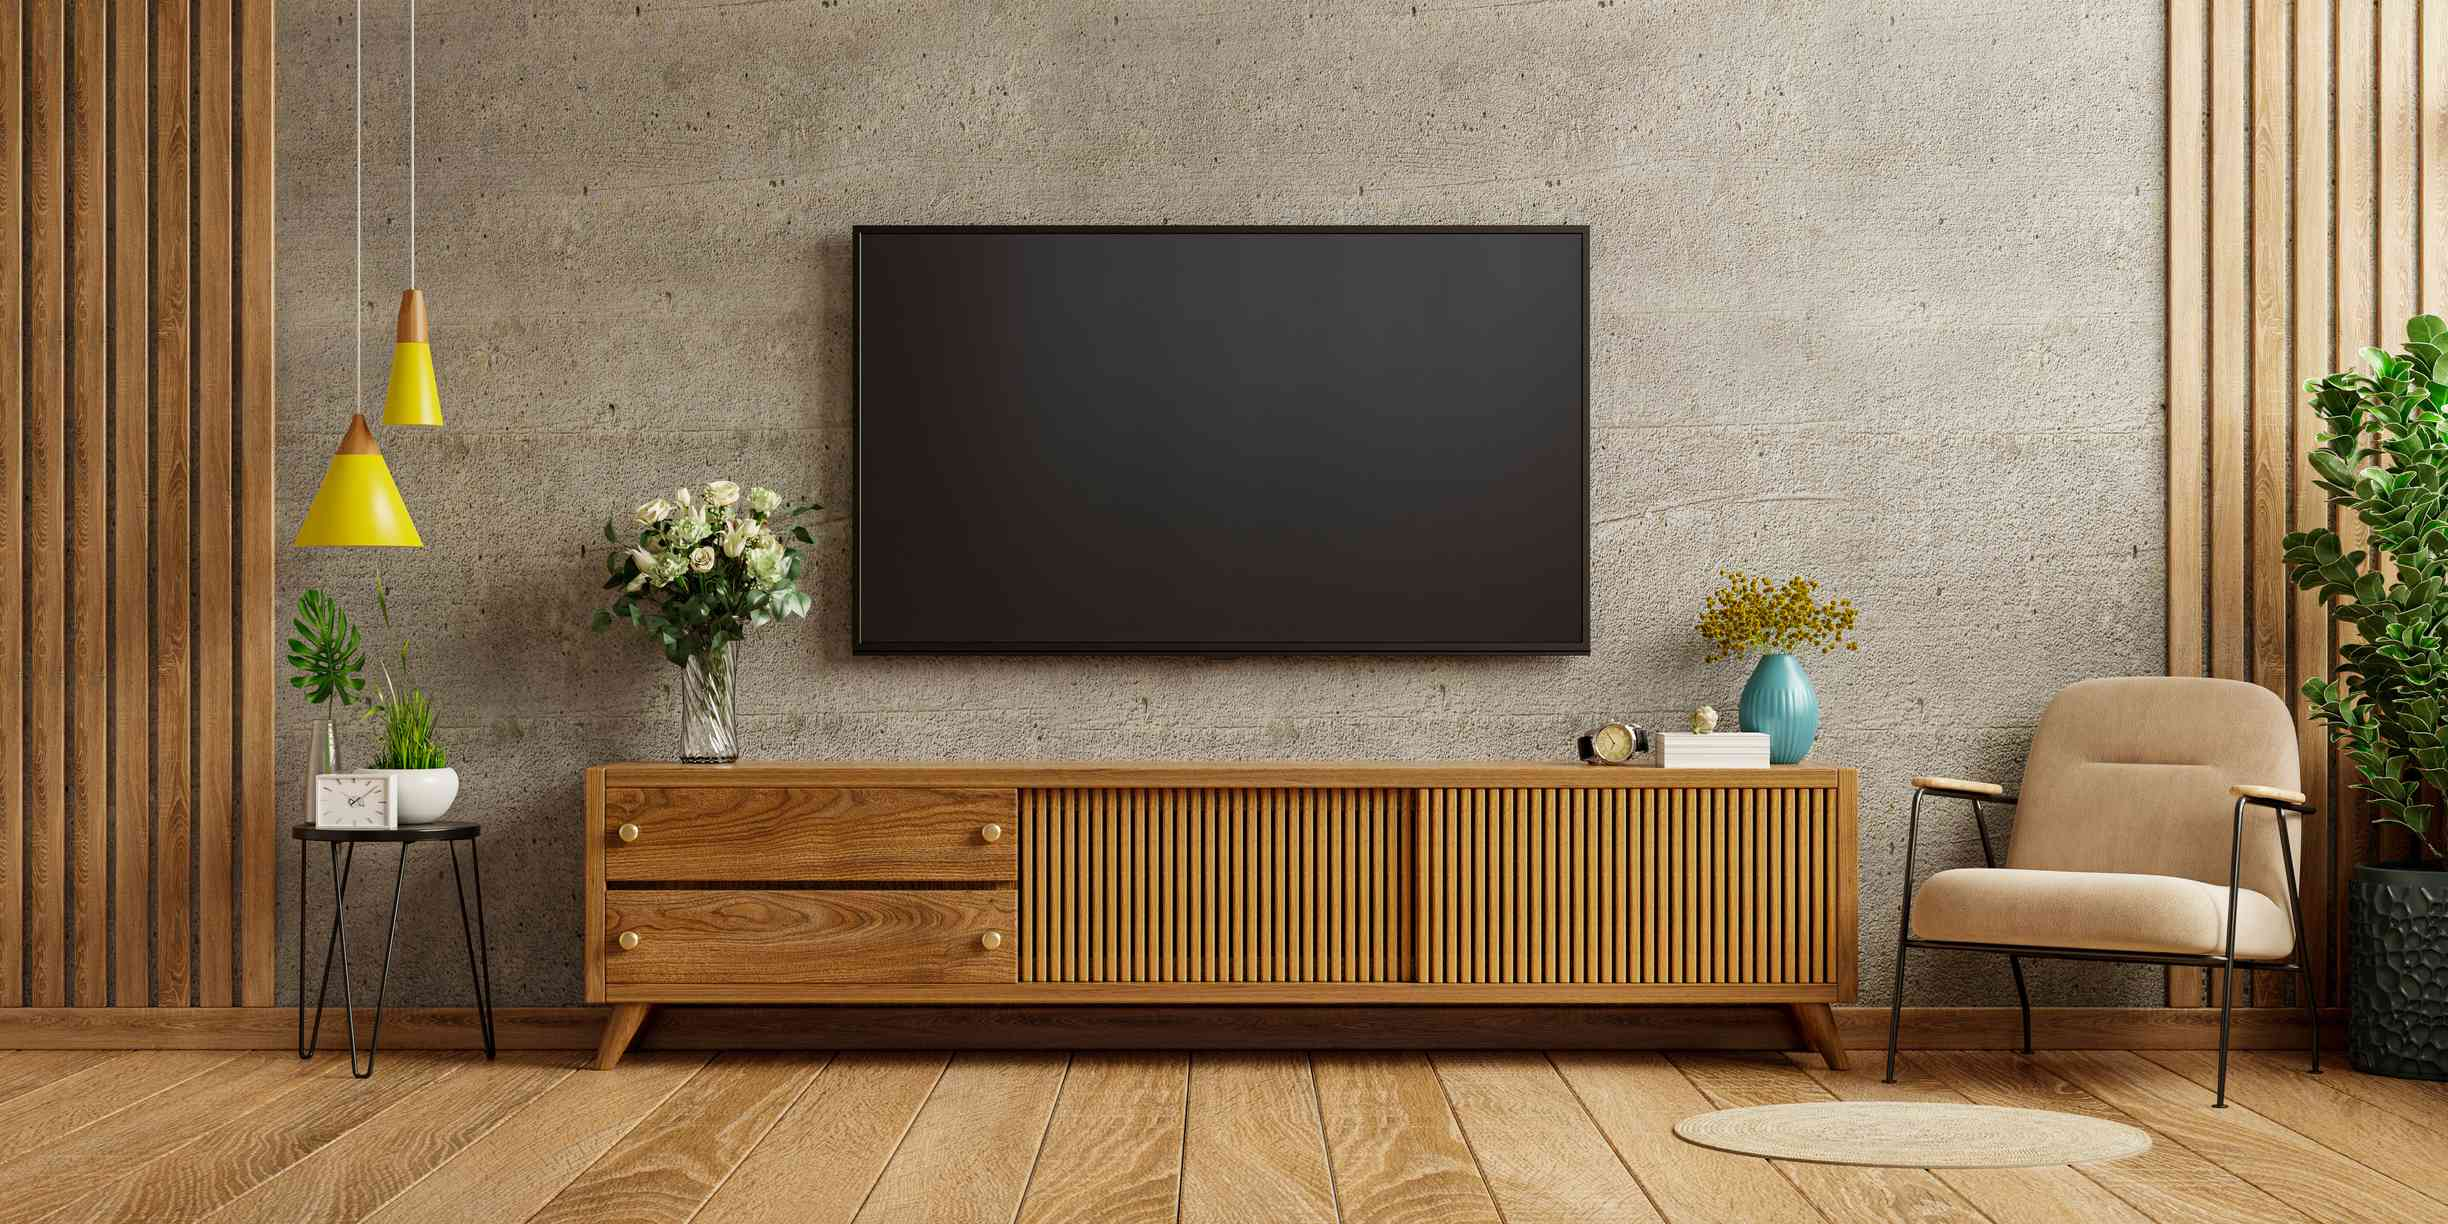 A large tv with media console in a living room